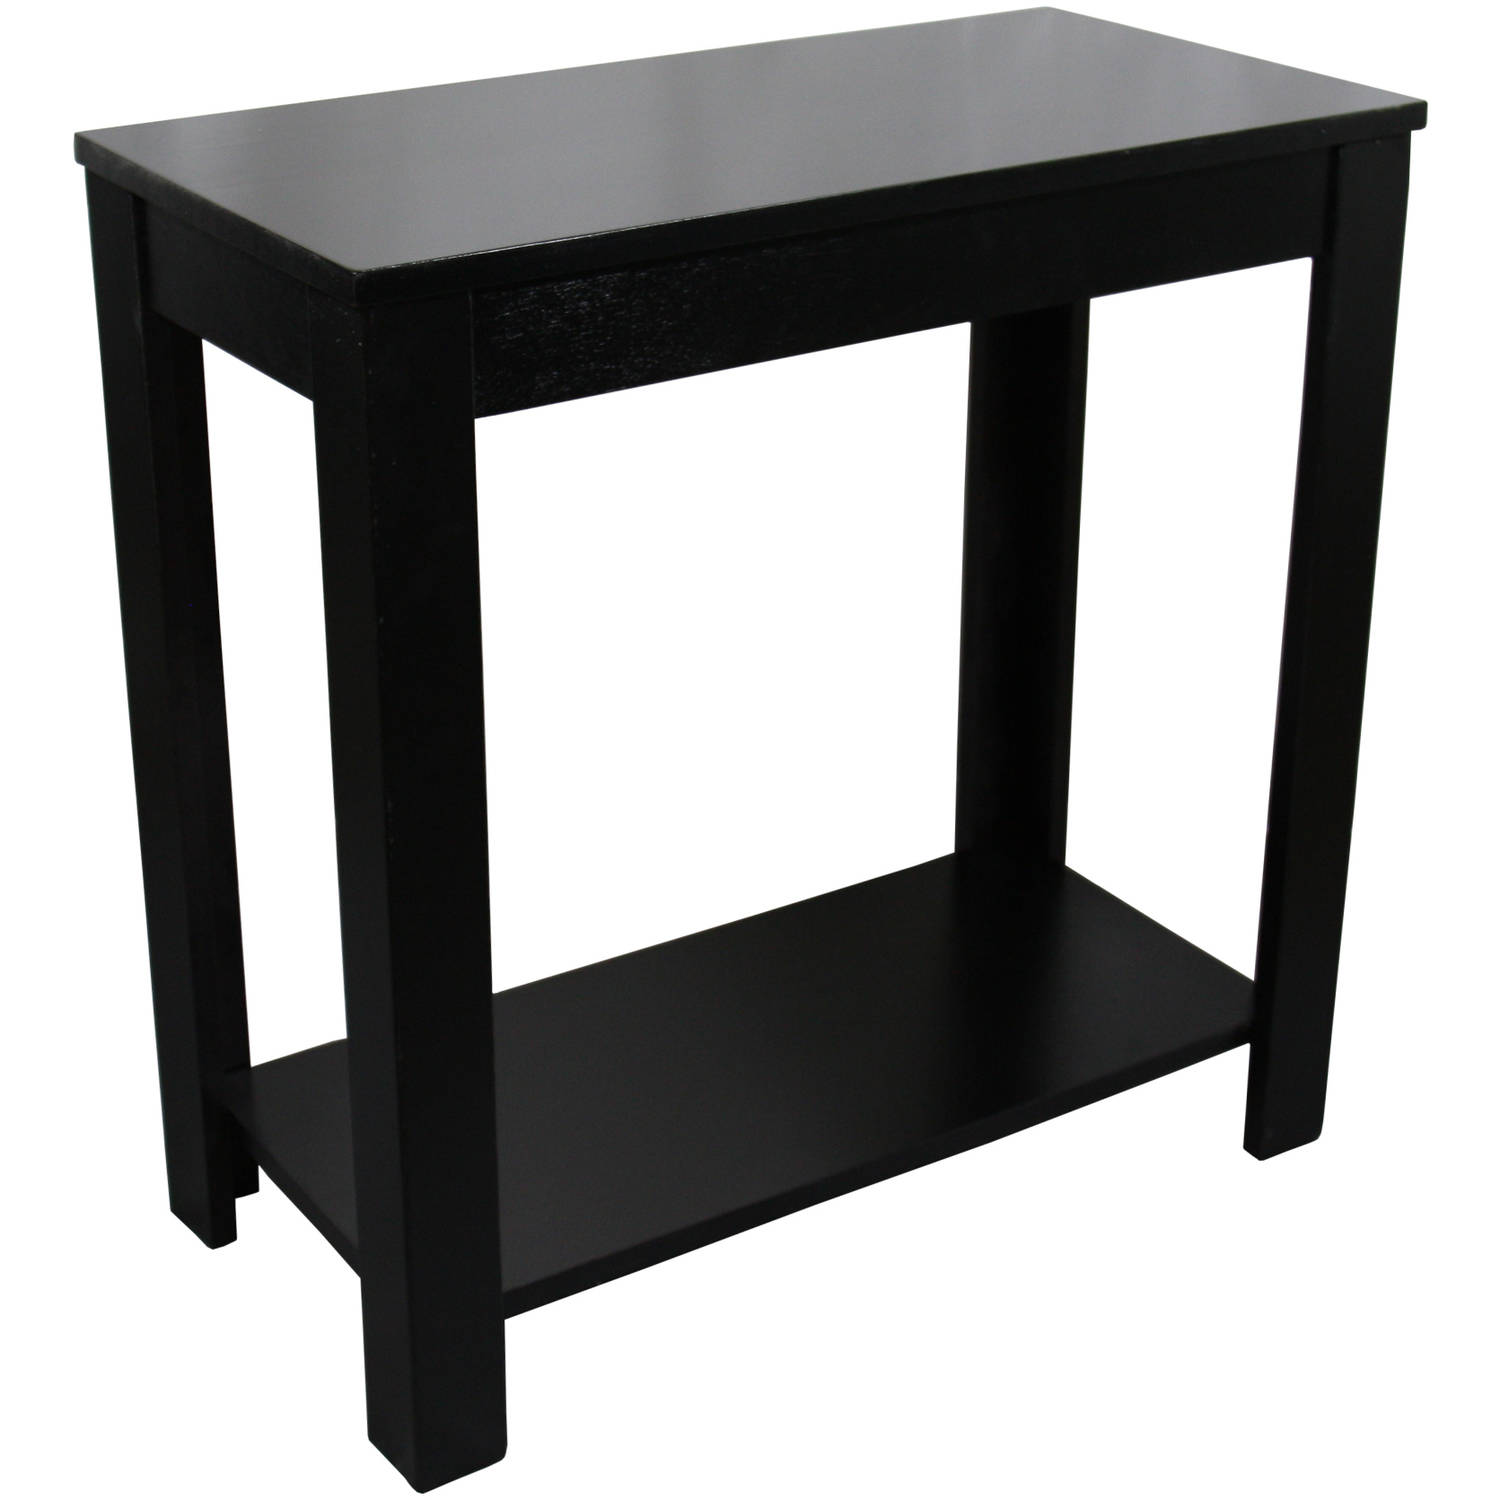 traditional dark cherry side end table black sofa tables pottery barn buchanan tree stump coffee toronto living room sets crystal bedside lamps sears tile that looks like wood